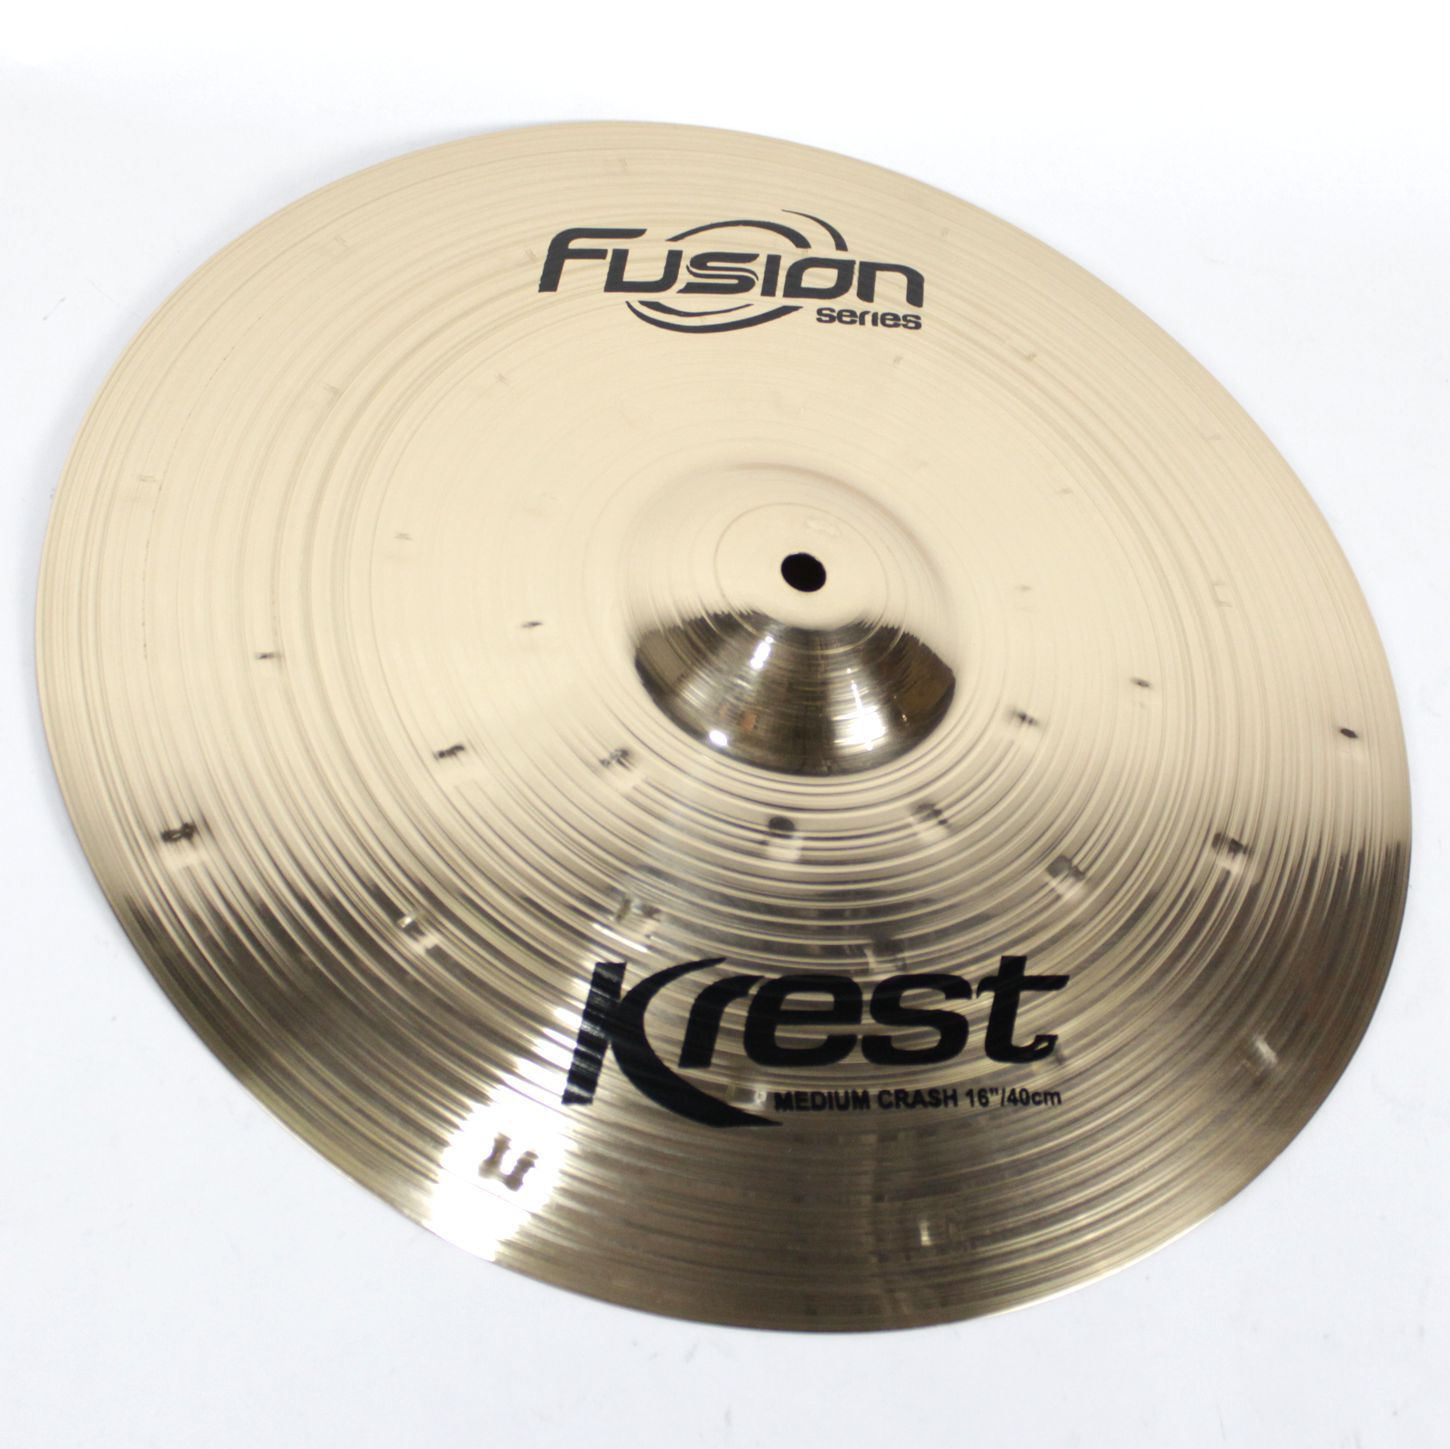 Prato Medium CRASH - Ataque - 16 Serie Fusion da KREST CYMBALS Bronze B8